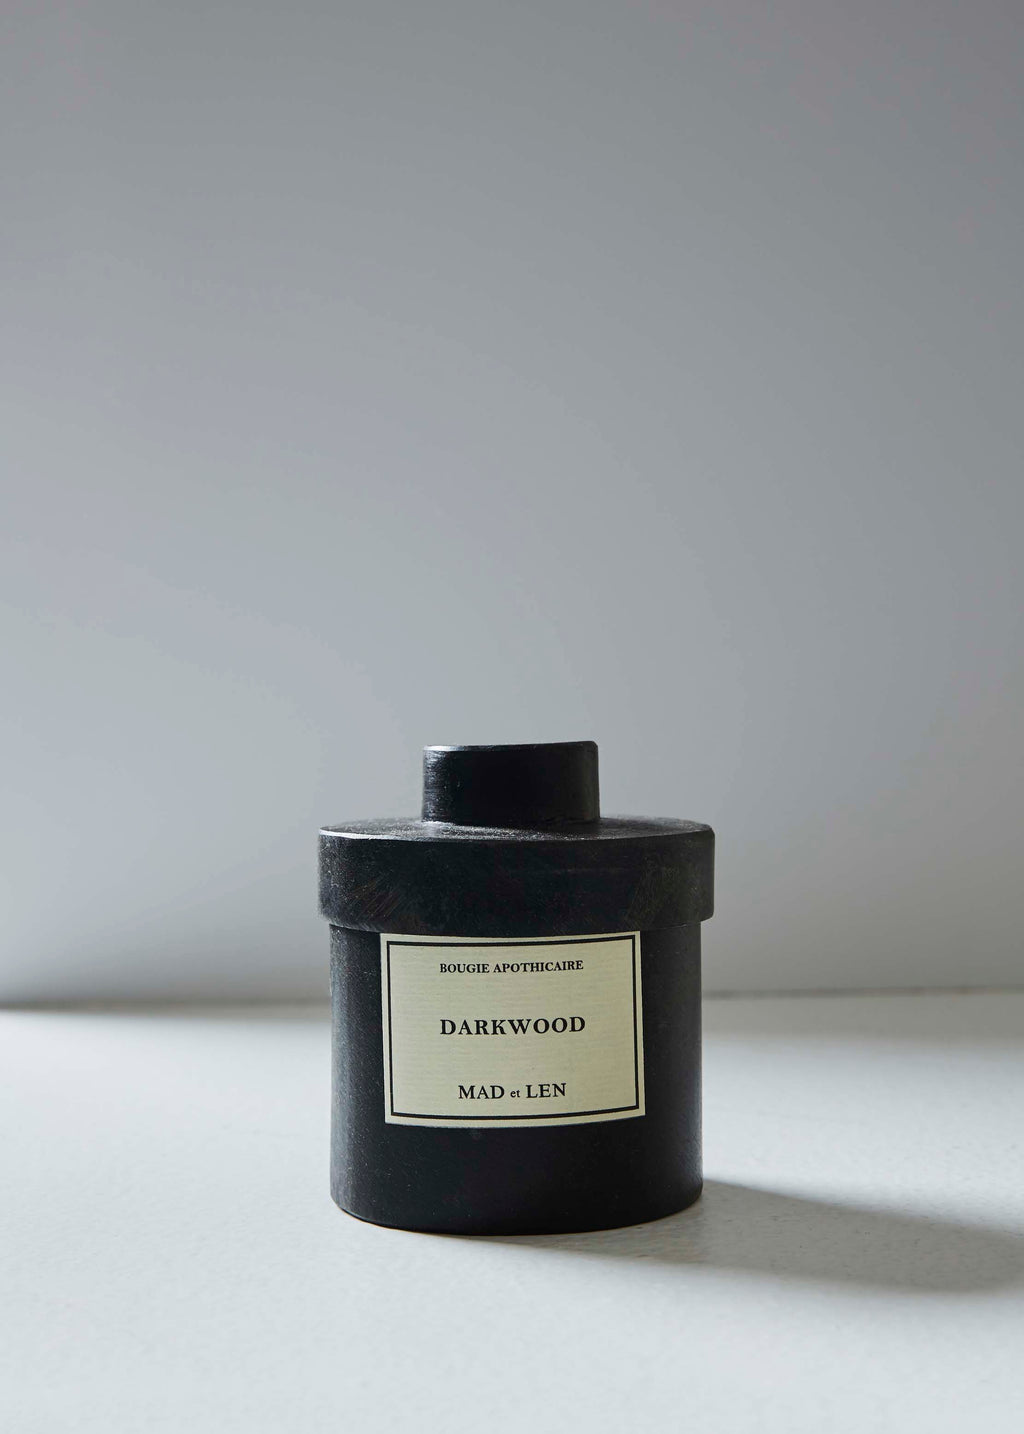 Bougie Apothecare Darkwood Candle